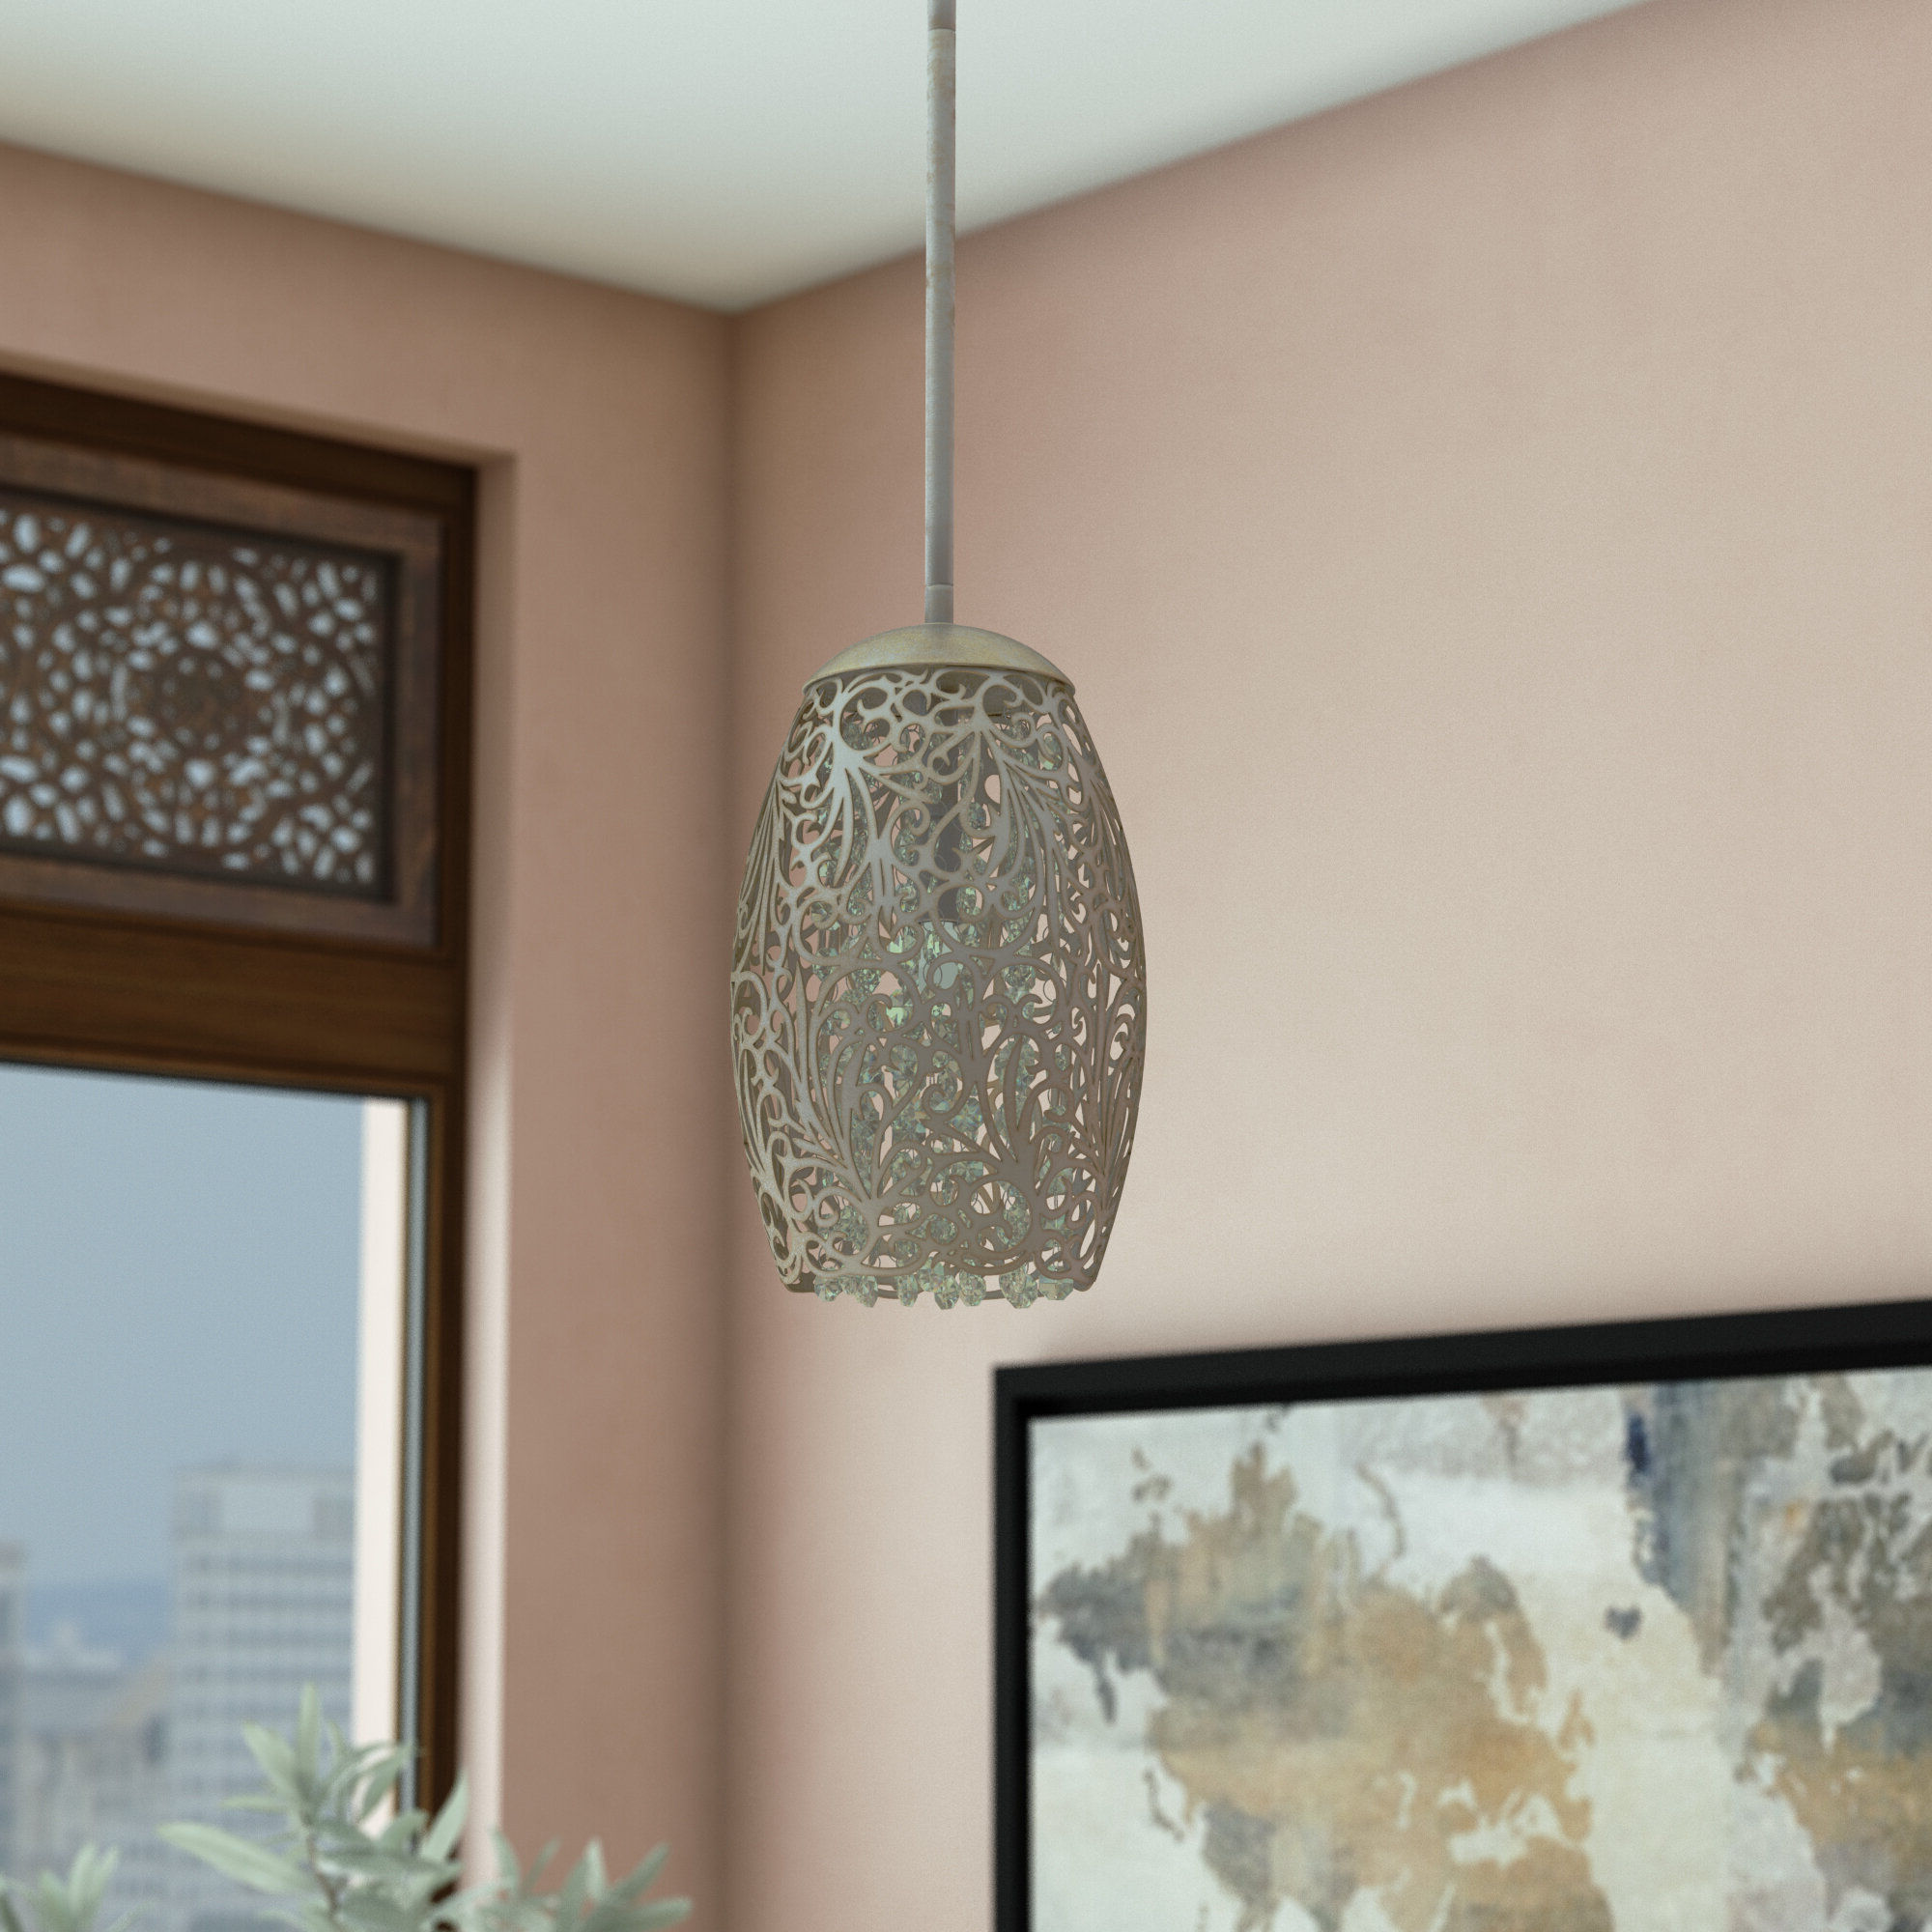 Giacinta 1 Light Single Bell Pendants Throughout Well Known Kraker 1 Light Single Cylinder Pendant (View 13 of 25)